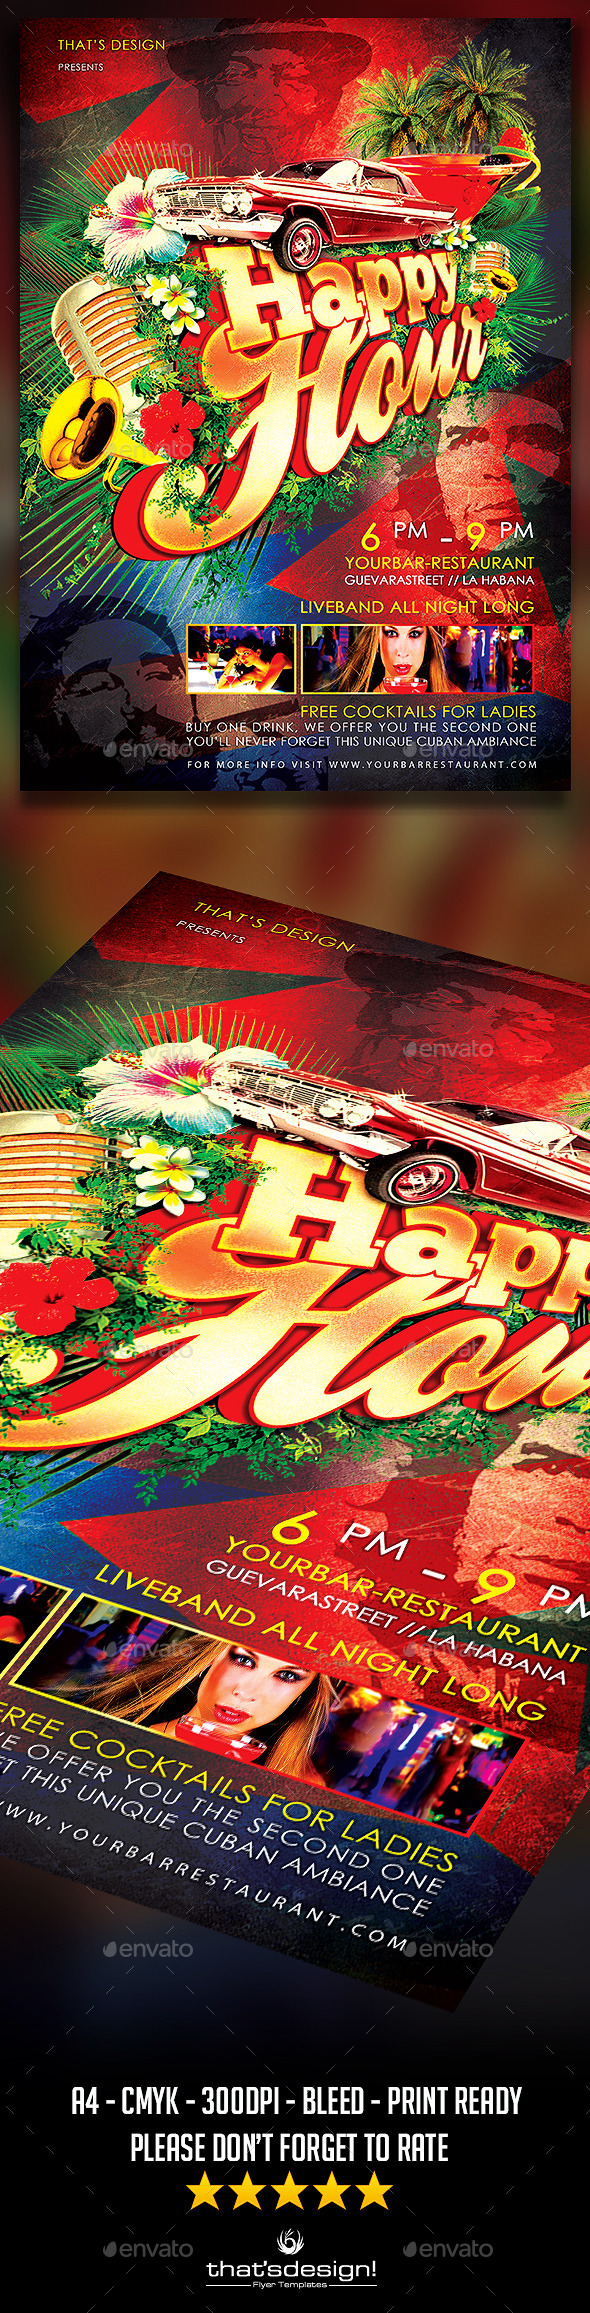 Tropical Cuban Happy Hour Flyer Template - Clubs & Parties Events